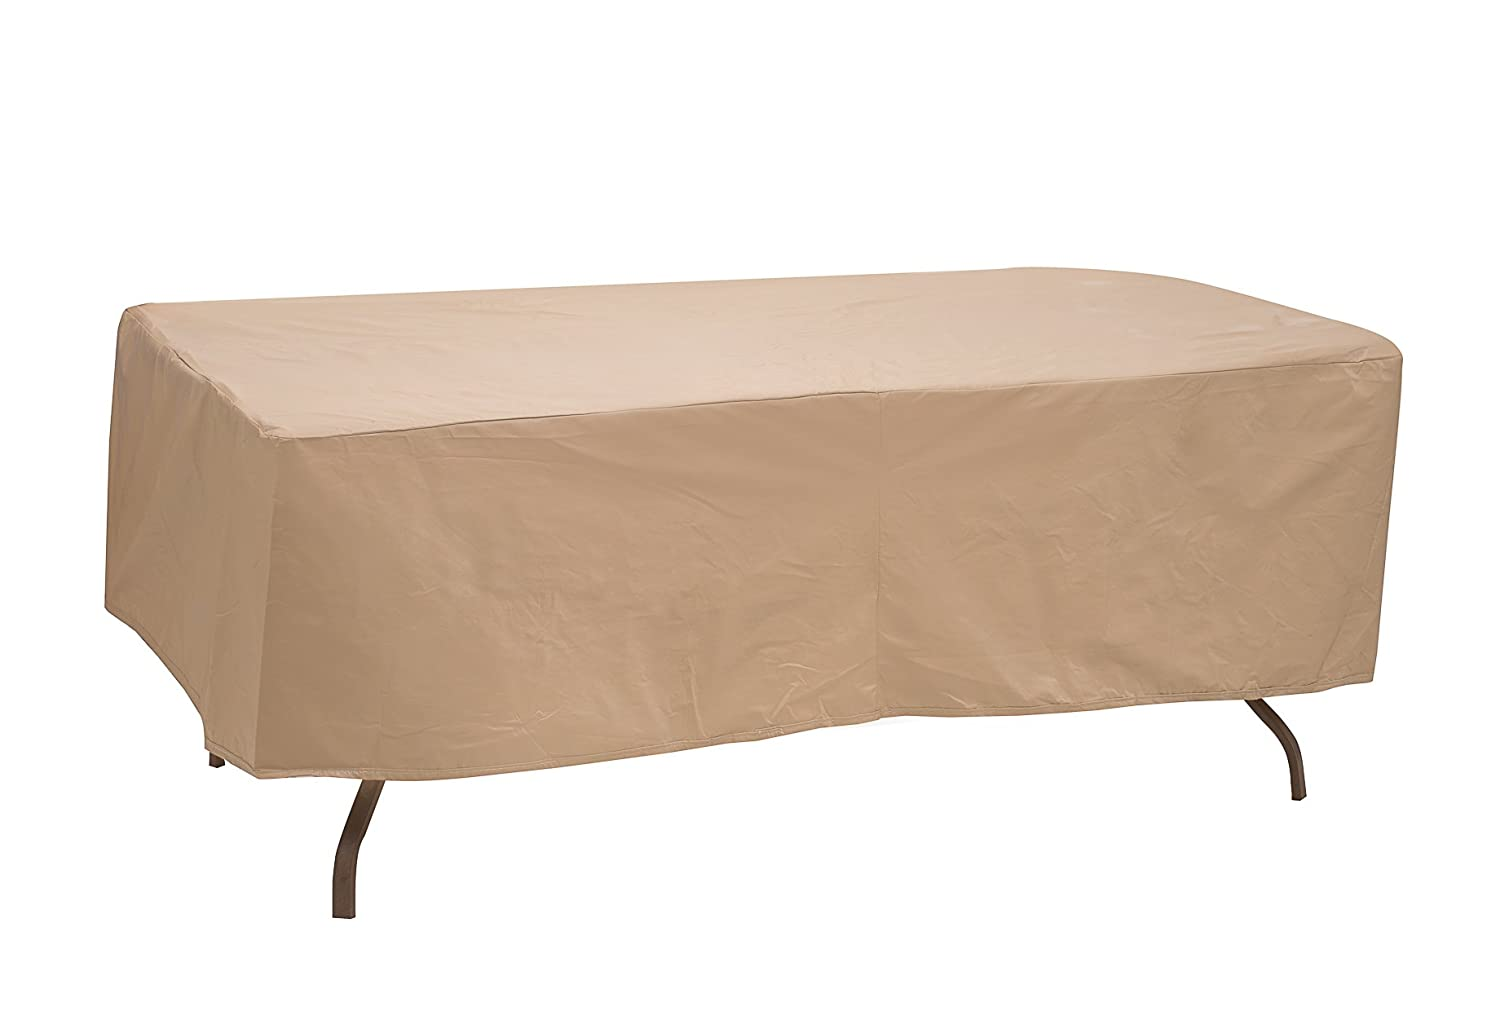 Protective Covers 1155-TN Oval/Rectangle Table Cover, Weatherproof, 48in x 84in, Tan